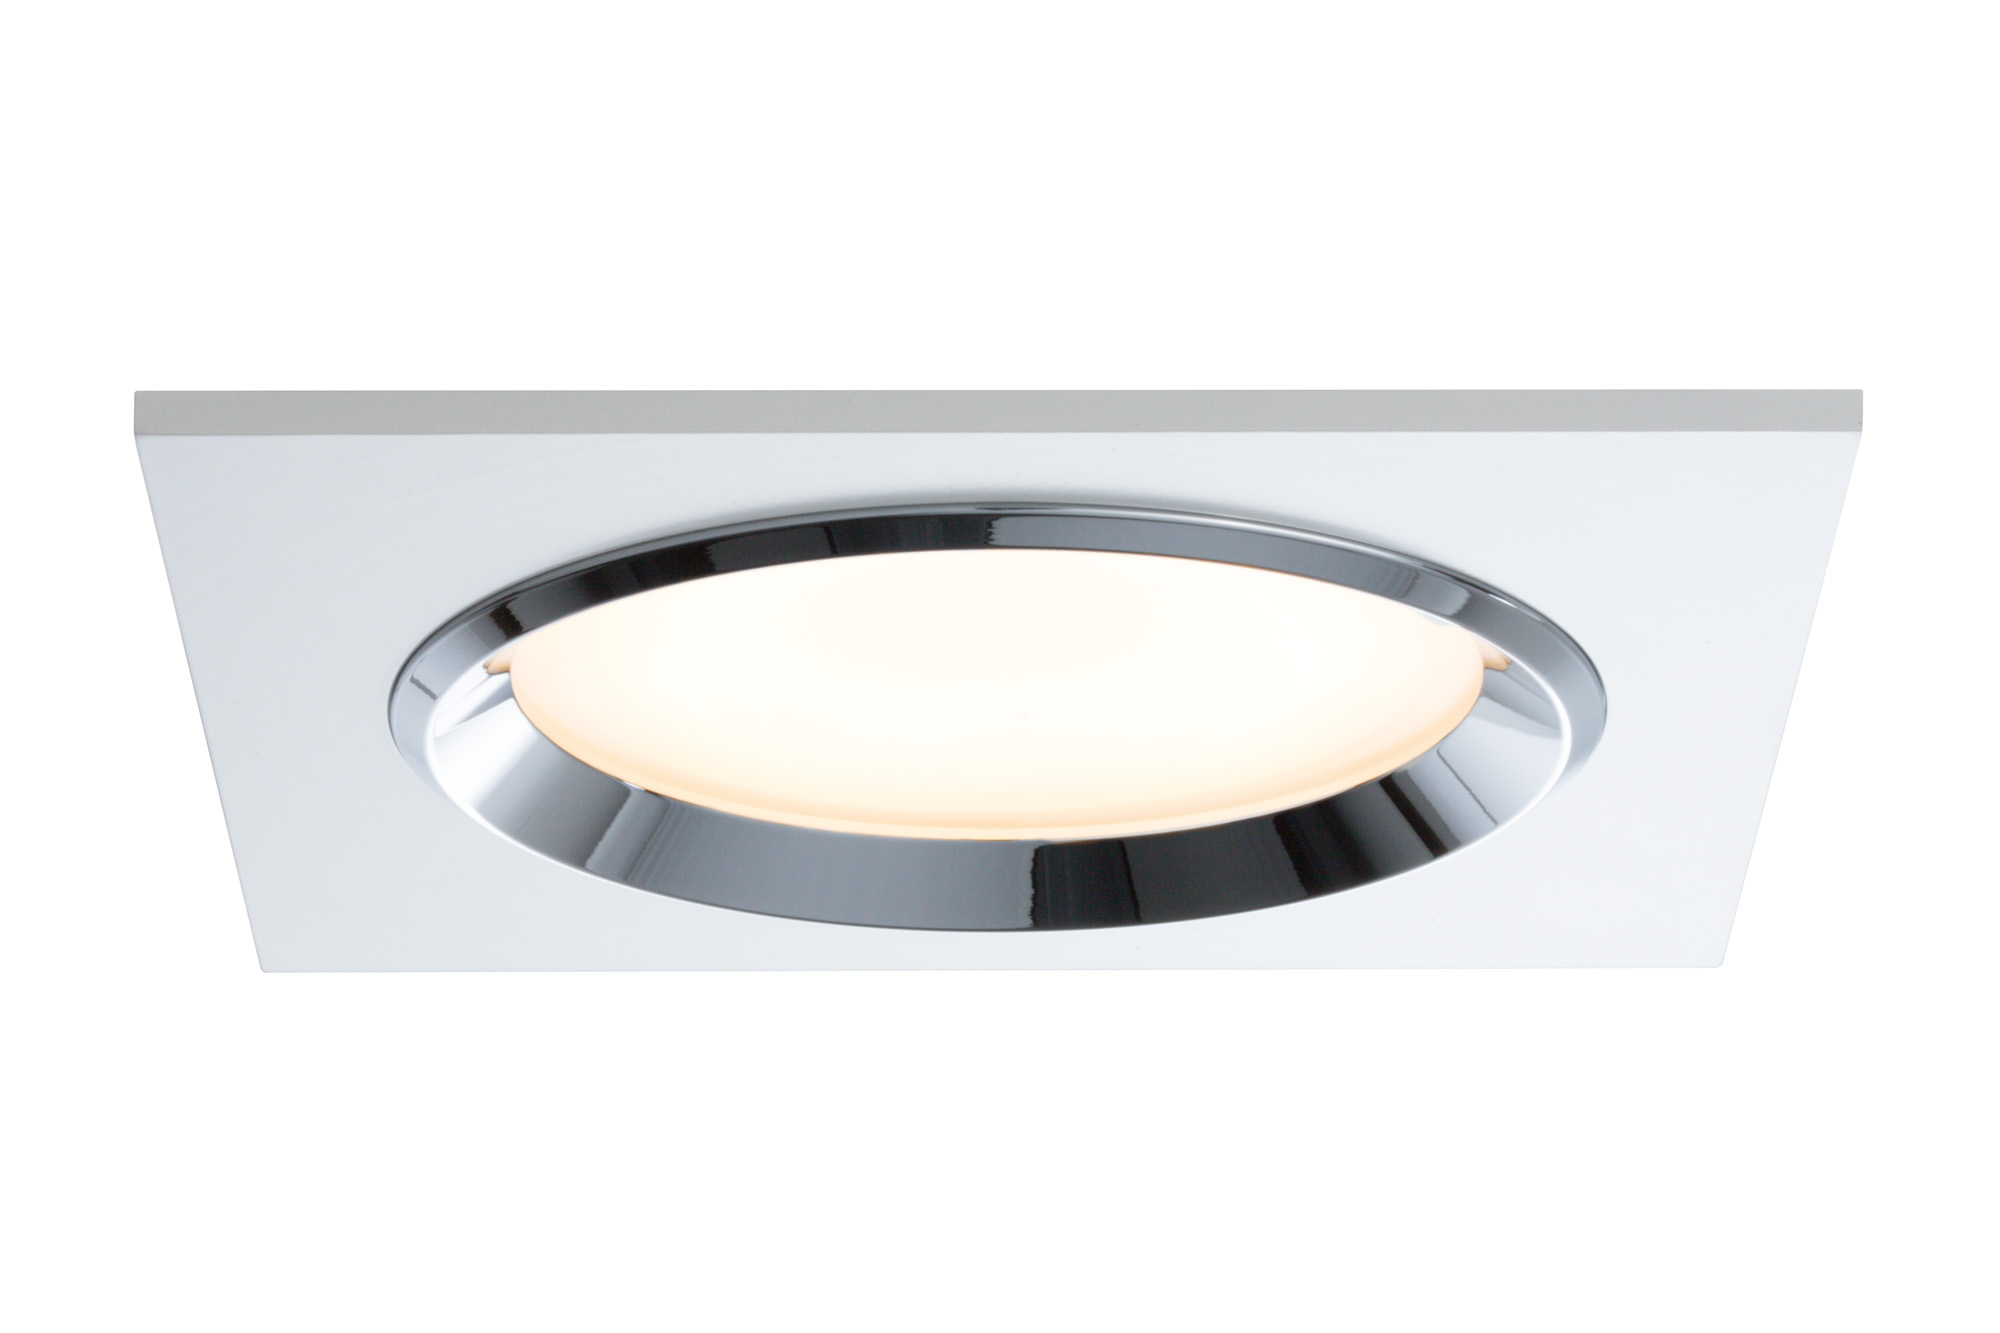 92695 Prem. EBL Set Dice eckig LED 3x8W Ws Elegant material – high-quality finish. The LED recessed luminaires in the Premium Line offer efficient but homelike warm white LED light and meet the most stringent standards for material quality and design. The recessed lamp means that the light it emits is free of glare despite its excellent light output. 926.95 Premium line recessed light set, Dice LED White/chrome, rigid, 3-pc. set Paulmann